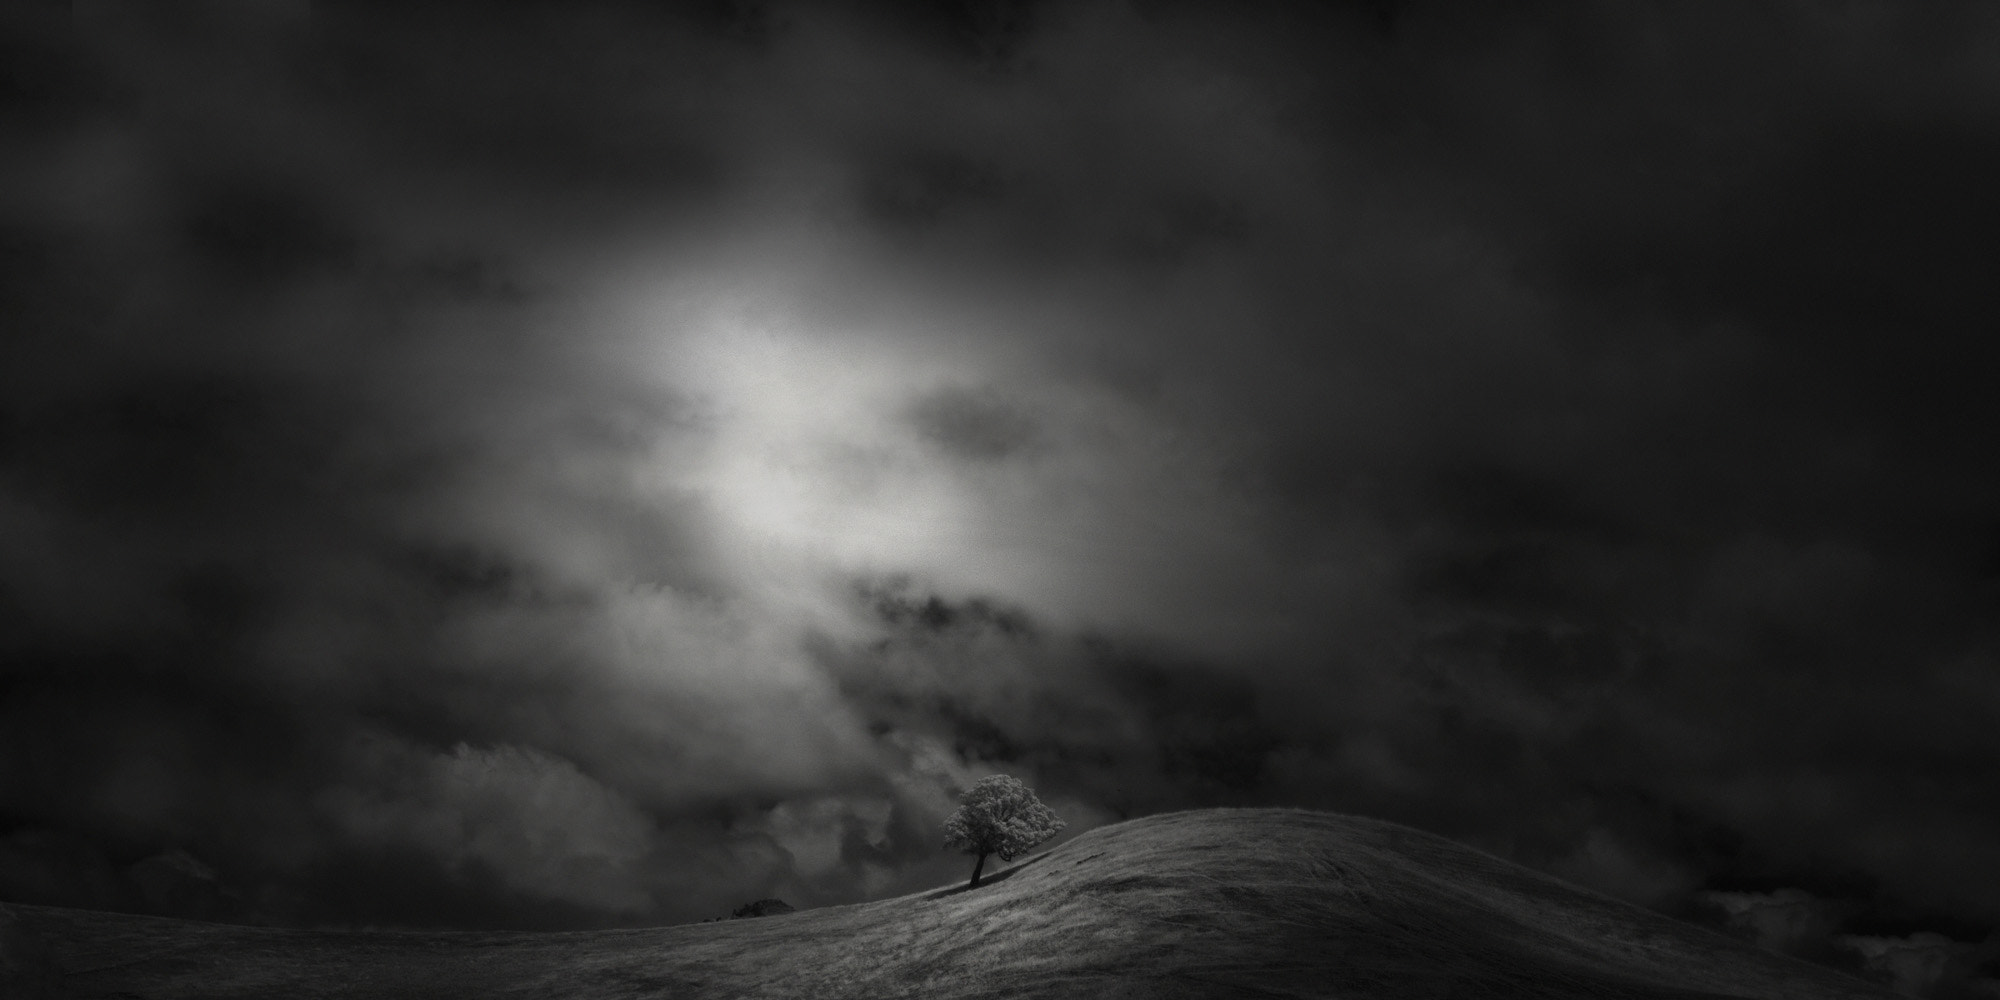 Photograph tree & hill by Nathan Wirth on 500px